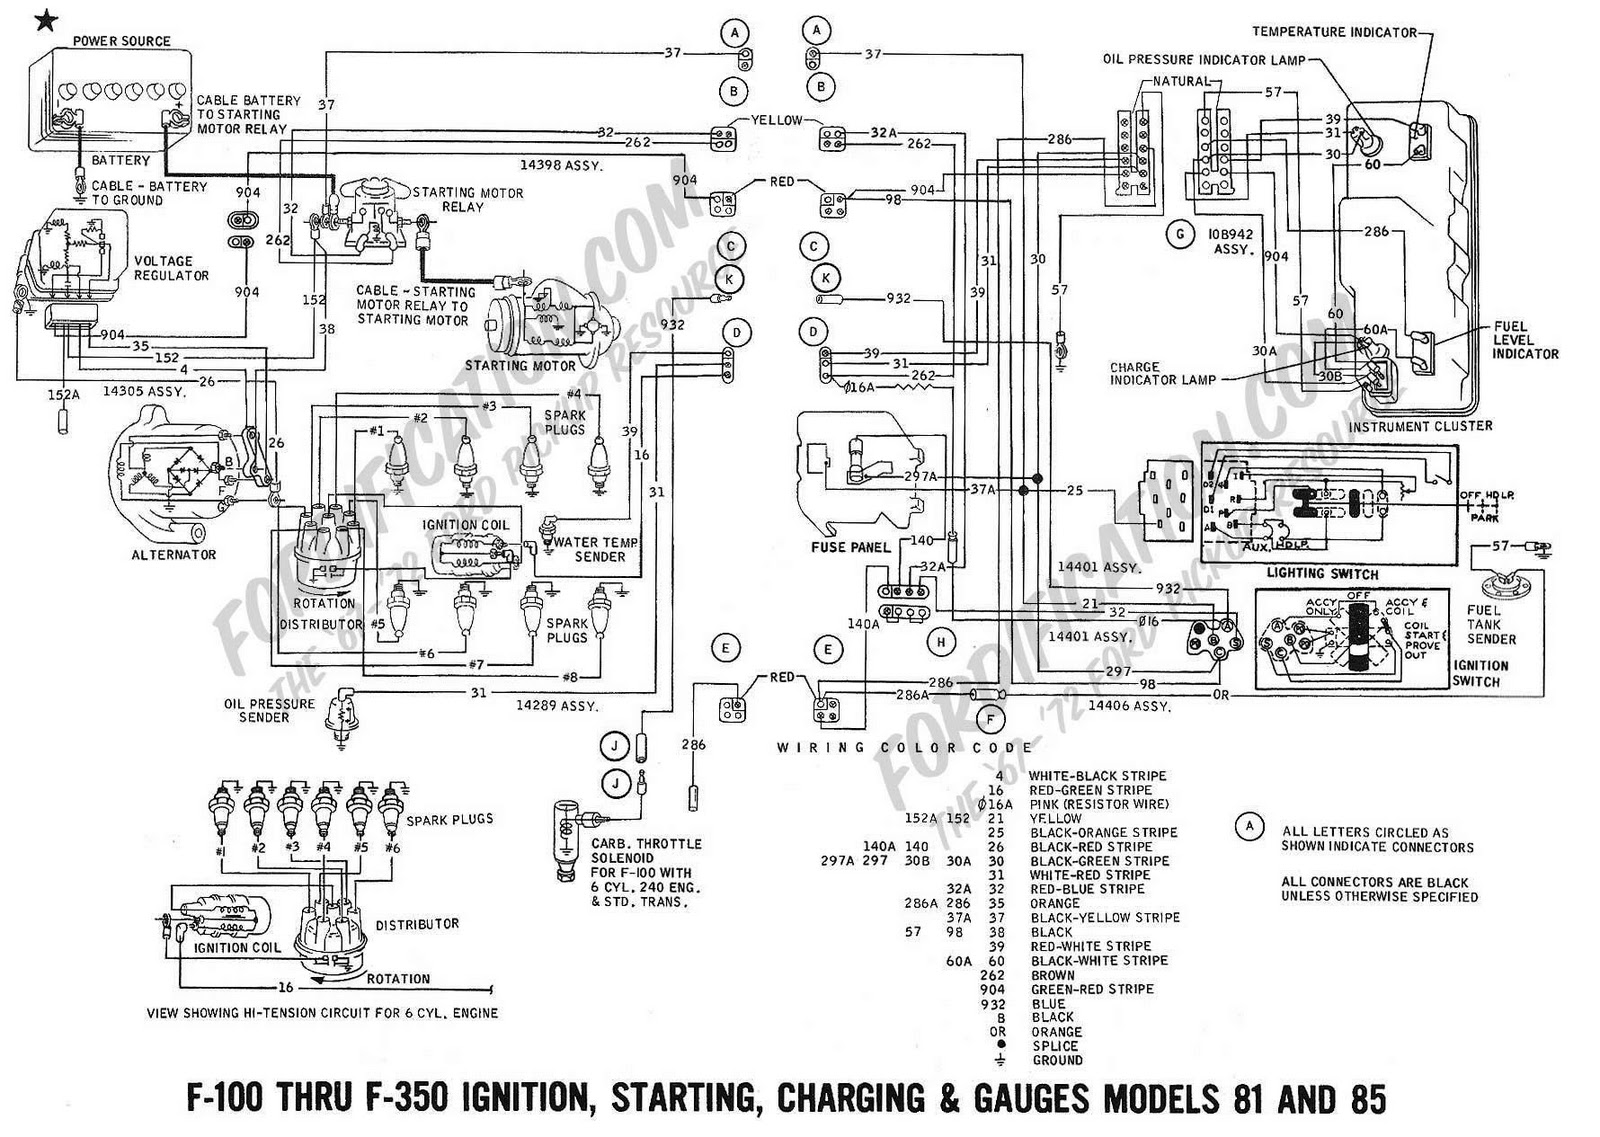 1956 ford alternator wiring diagram electrical diagrams schematics ford  f100 turn signals wiring diagrams 1968 ford